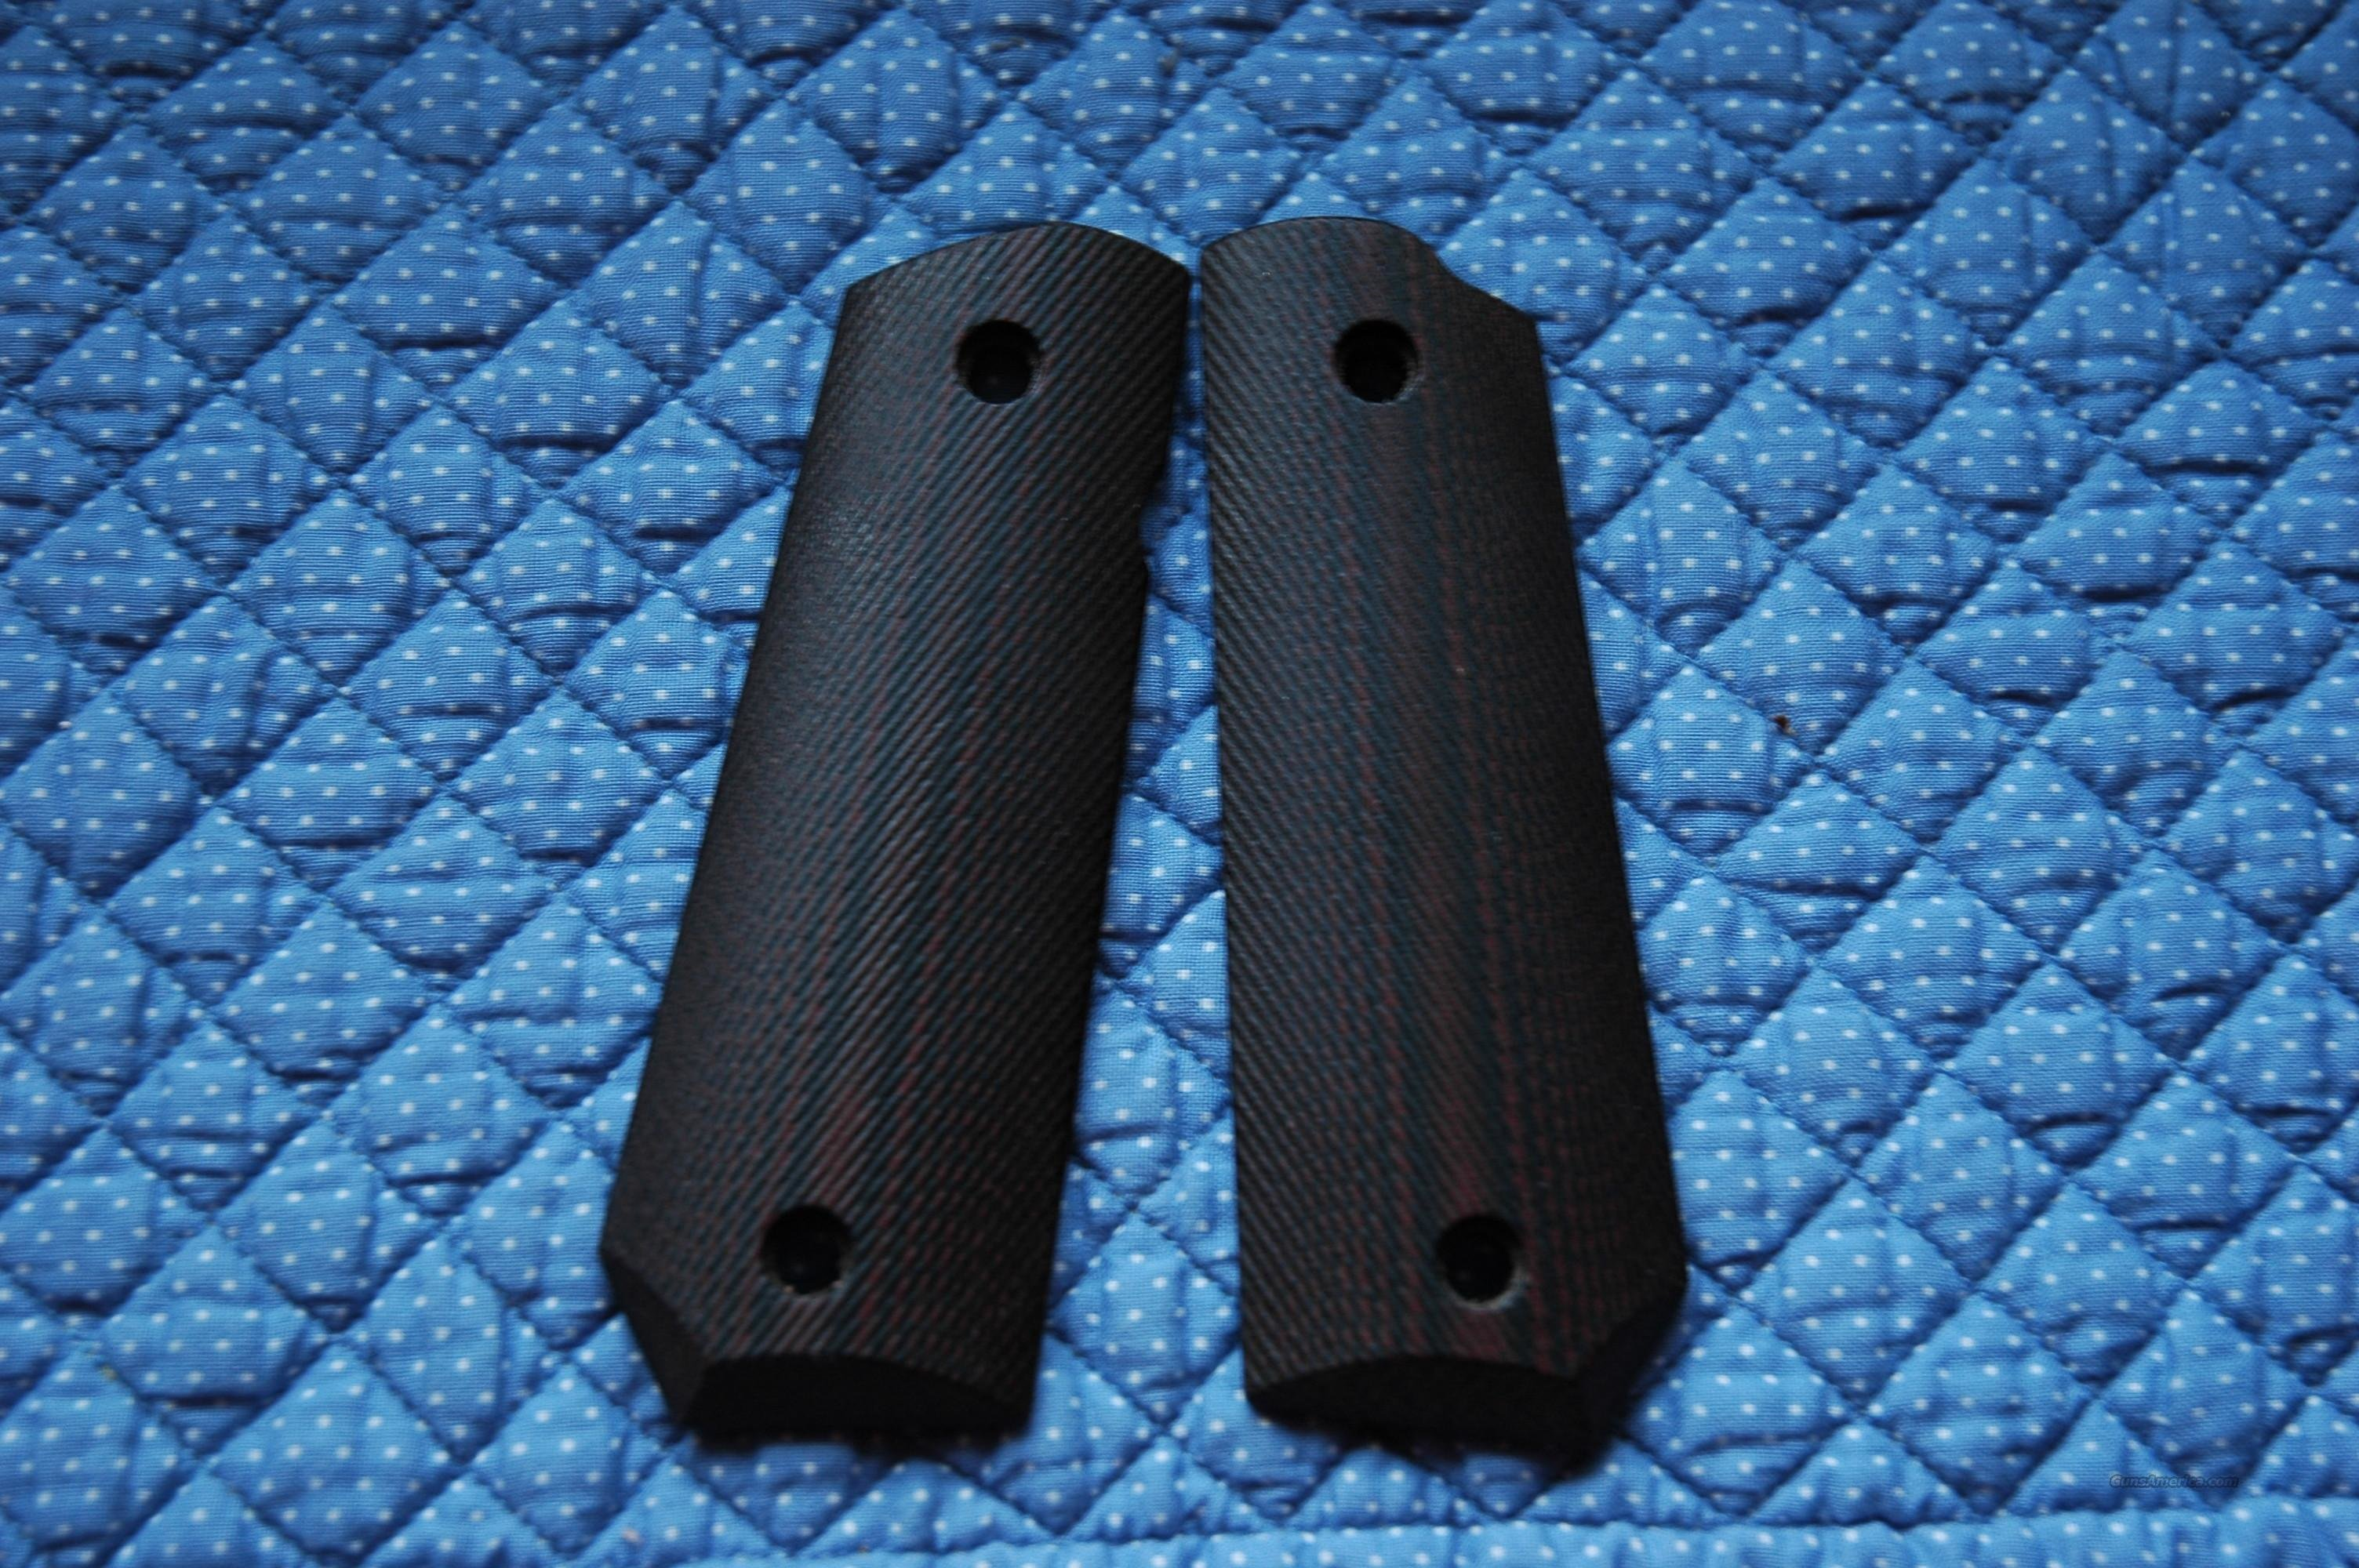 Mil-Tac bobtail G10 diagonal grips  Non-Guns > Gunstocks, Grips & Wood